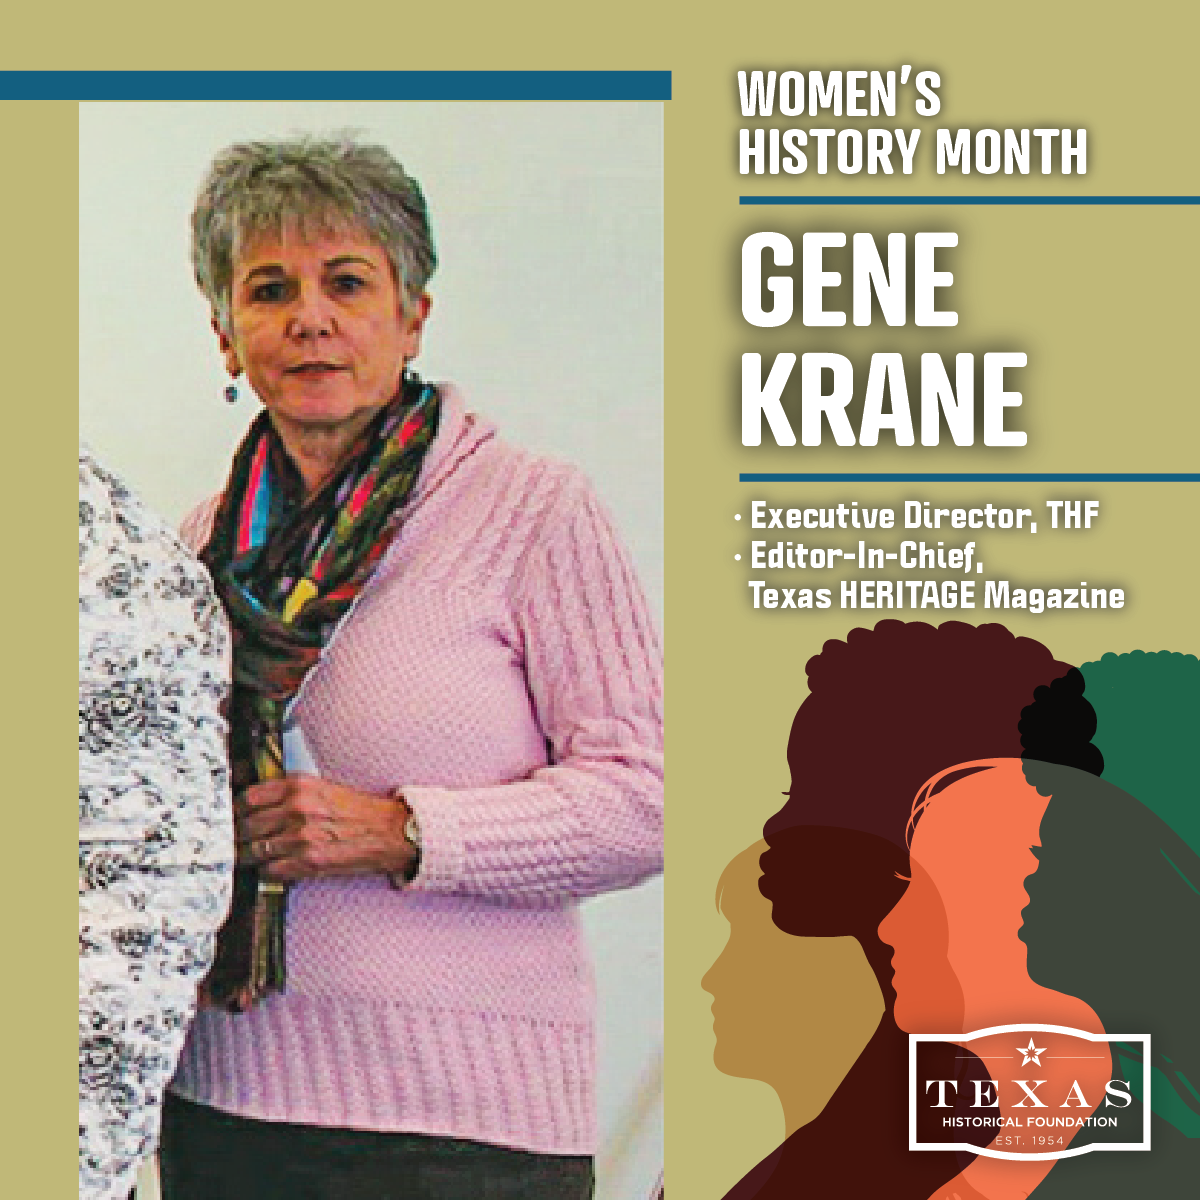 From Publications to Preservation: Gene Krane